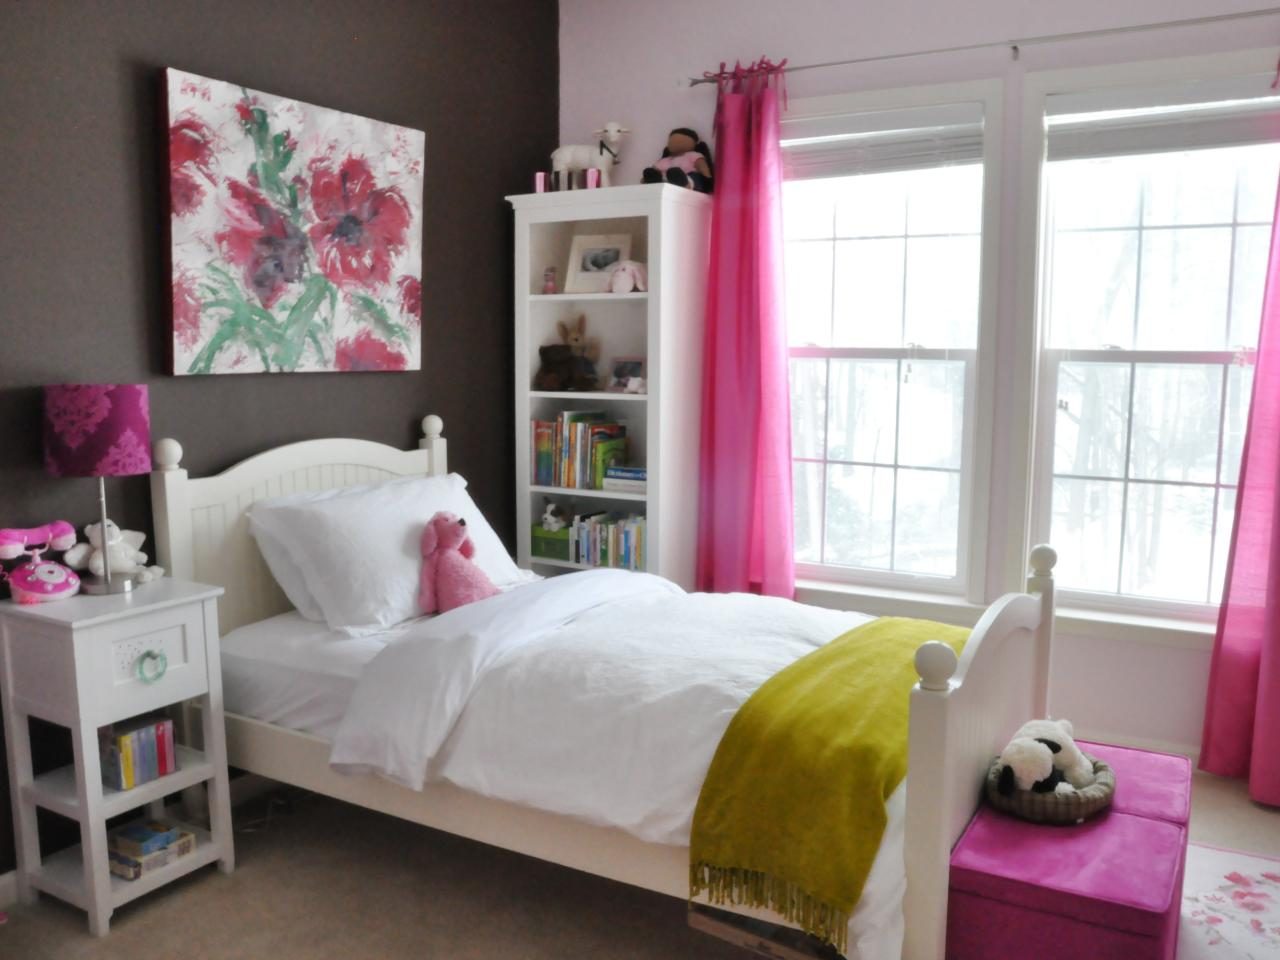 pictures of girls bedrooms photo - 1